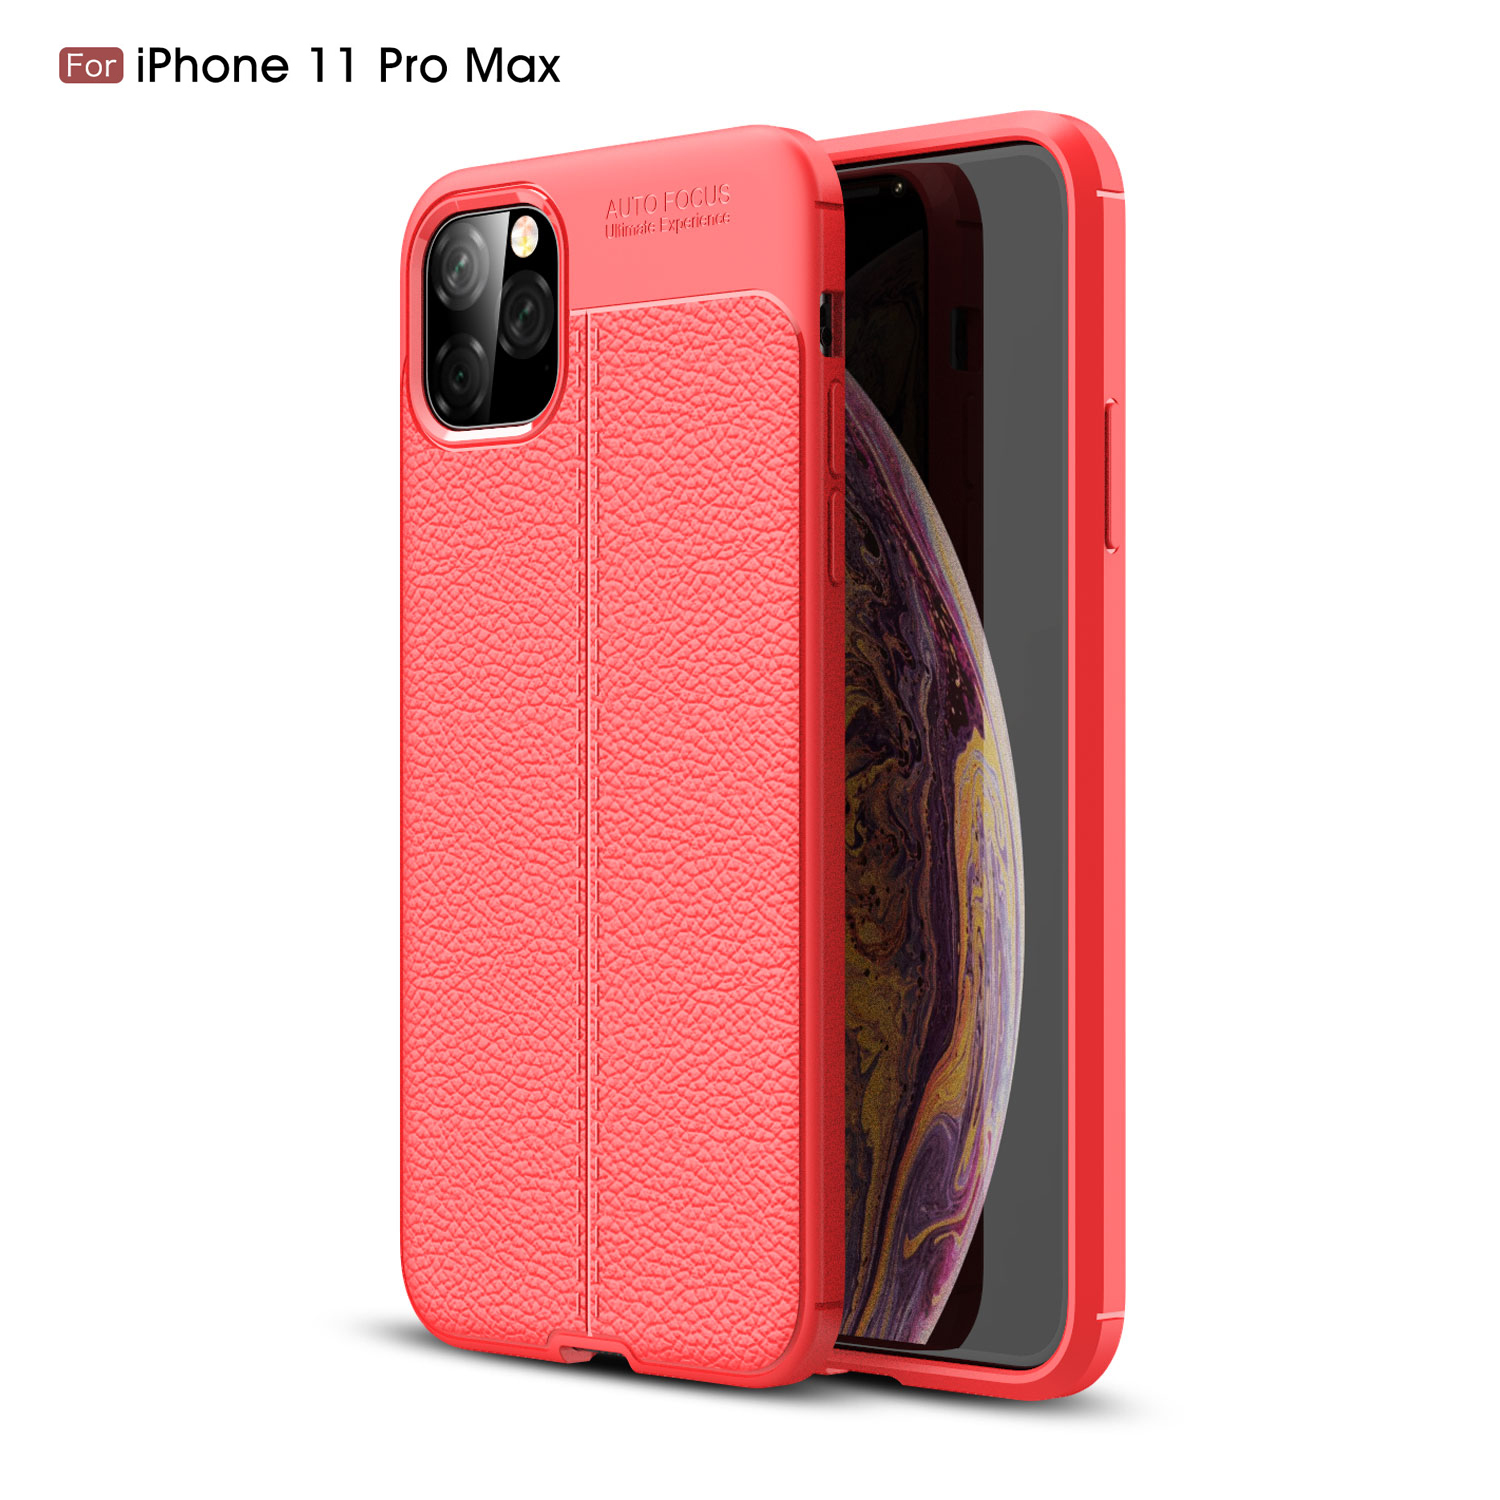 H582757030def49239eaad6c15d8bd4bbS For iPhone 11 Pro Max Case 7 8 5S 6S Plus XR XS SE Apple Case Luxury Leather PU Soft Silicone Phone Back Cover For iPhone 11 Pro